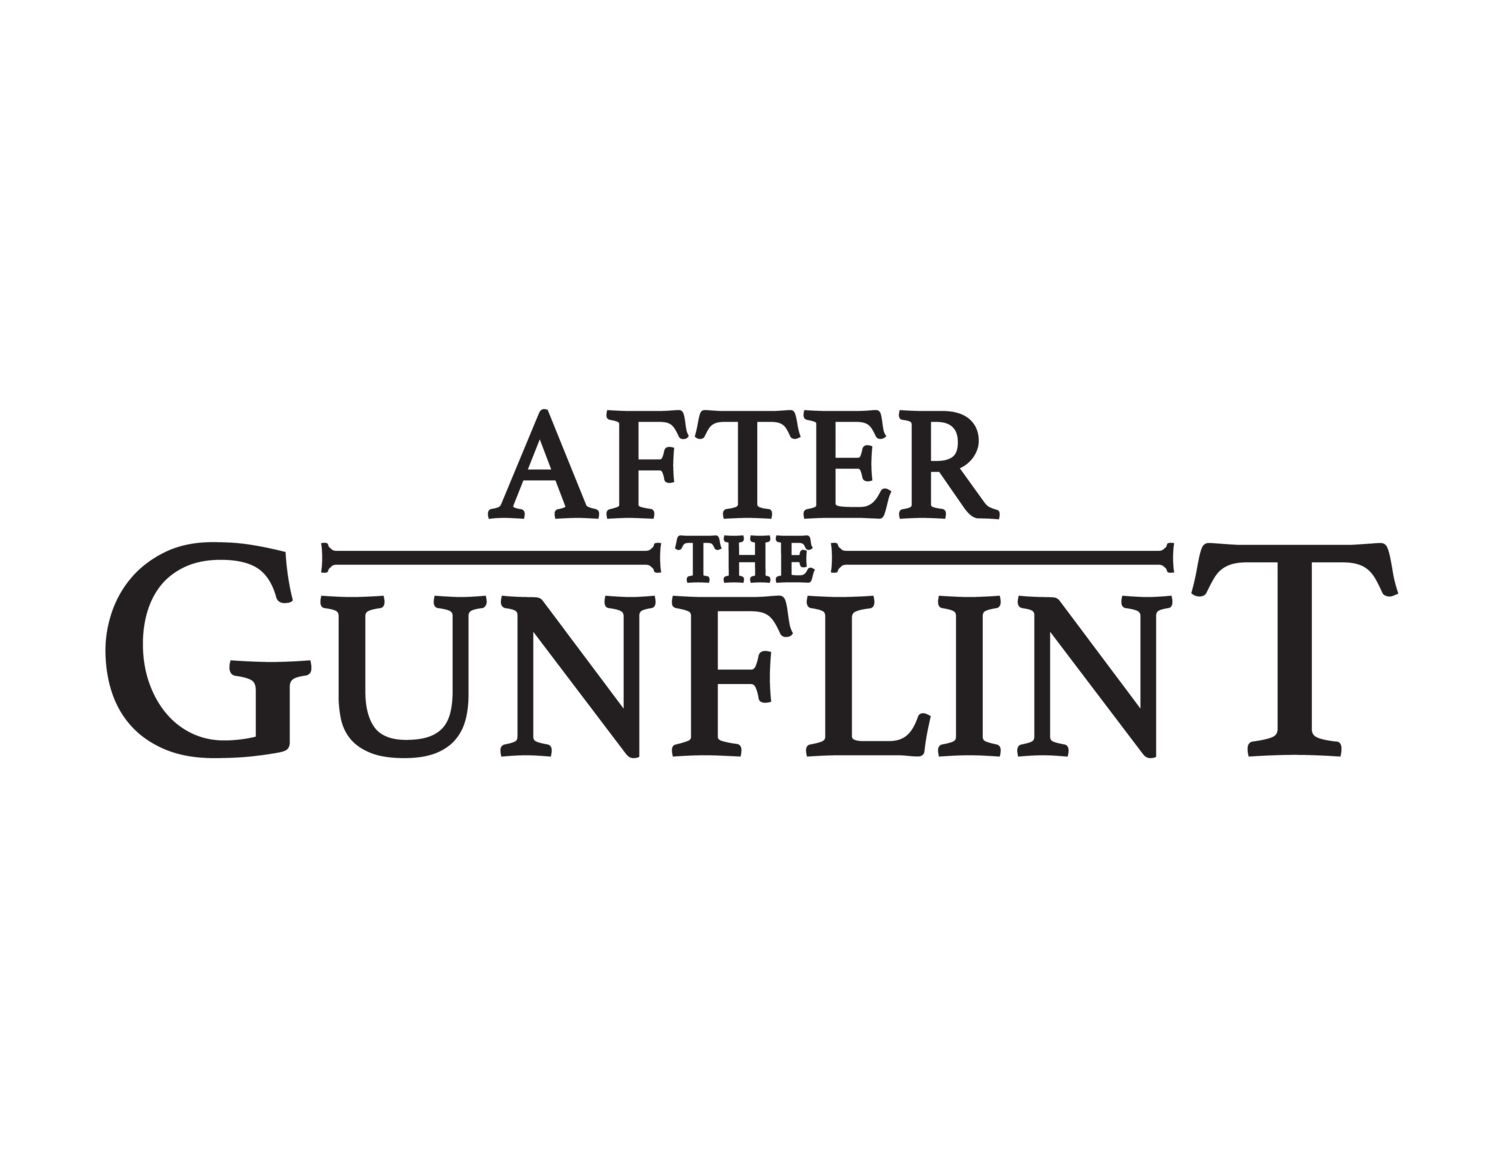 After The Gunflint